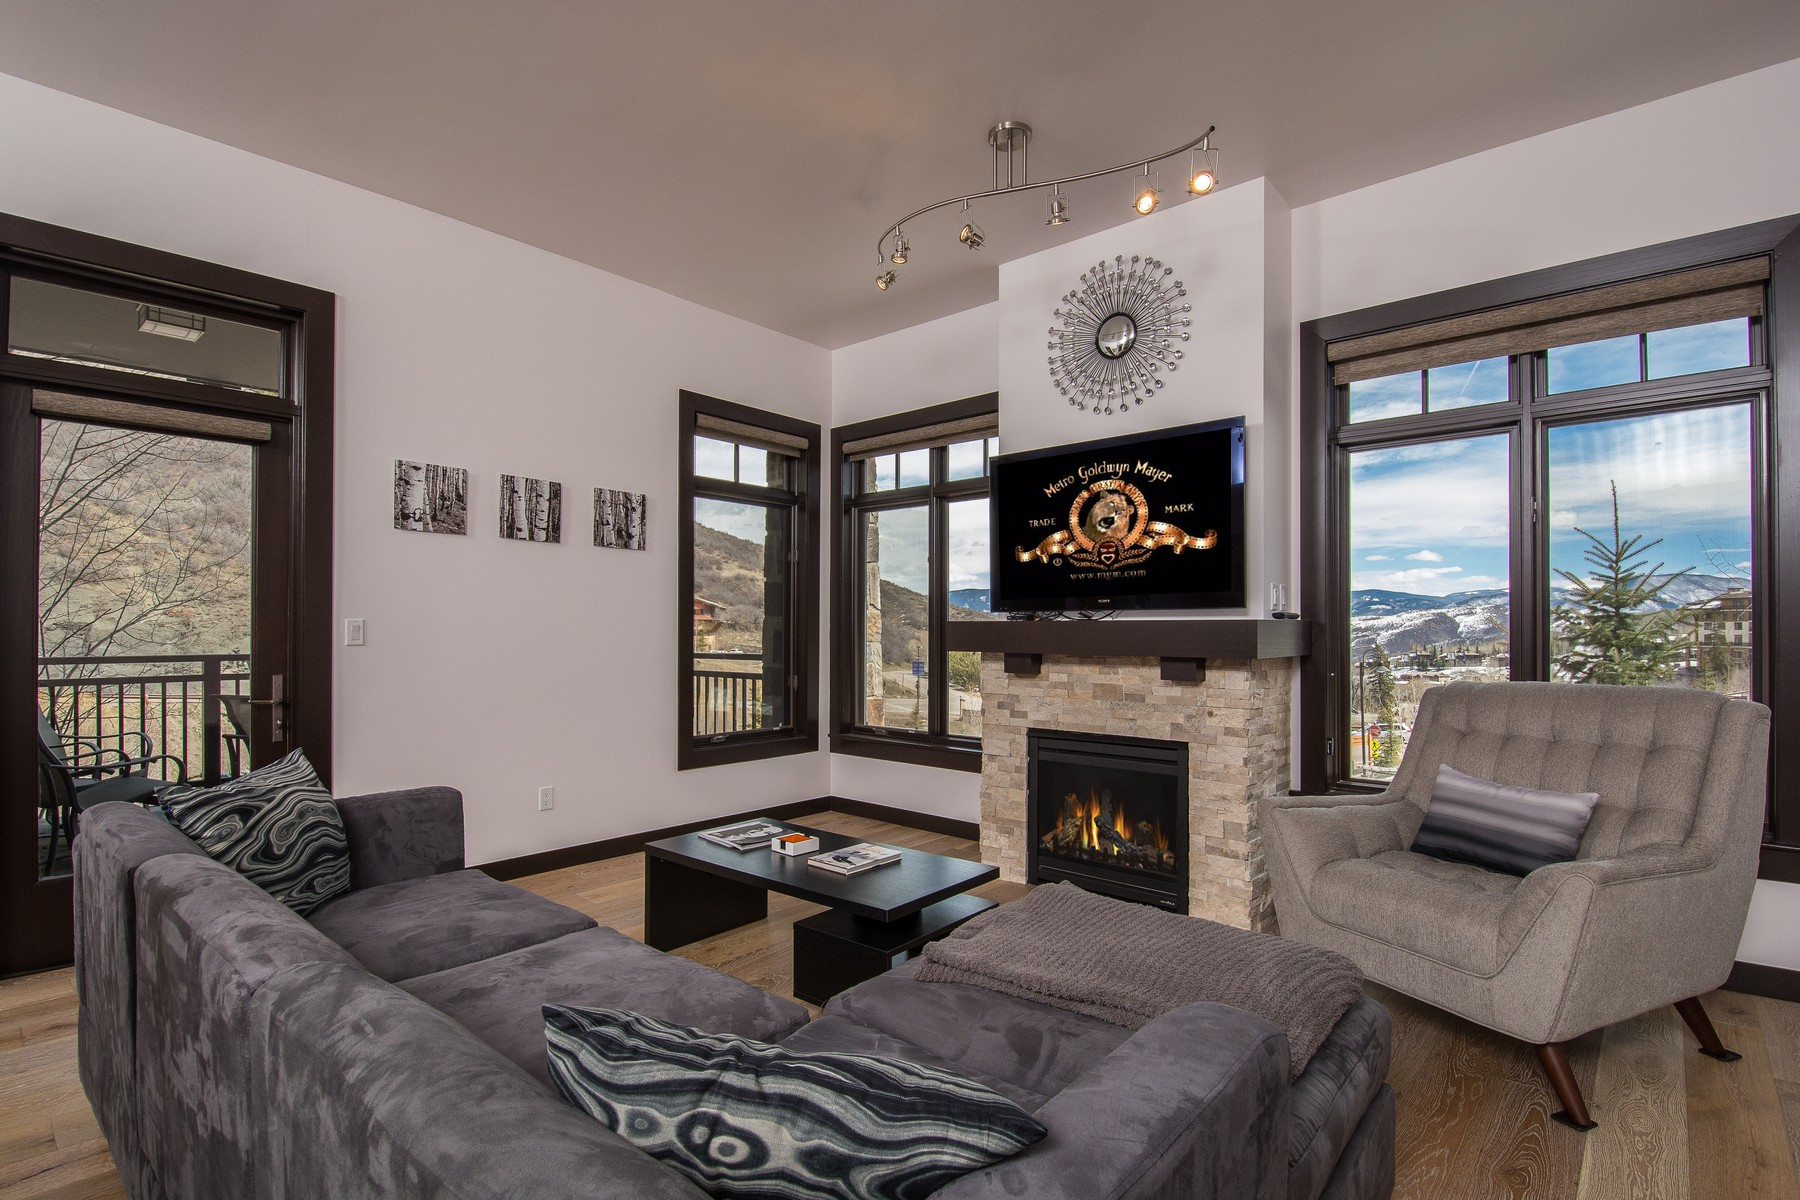 Condominio per Vendita alle ore Capitol Peak Unit 3032 60 Carriage Way Unit 3032 Snowmass Village, Colorado, 81615 Stati Uniti